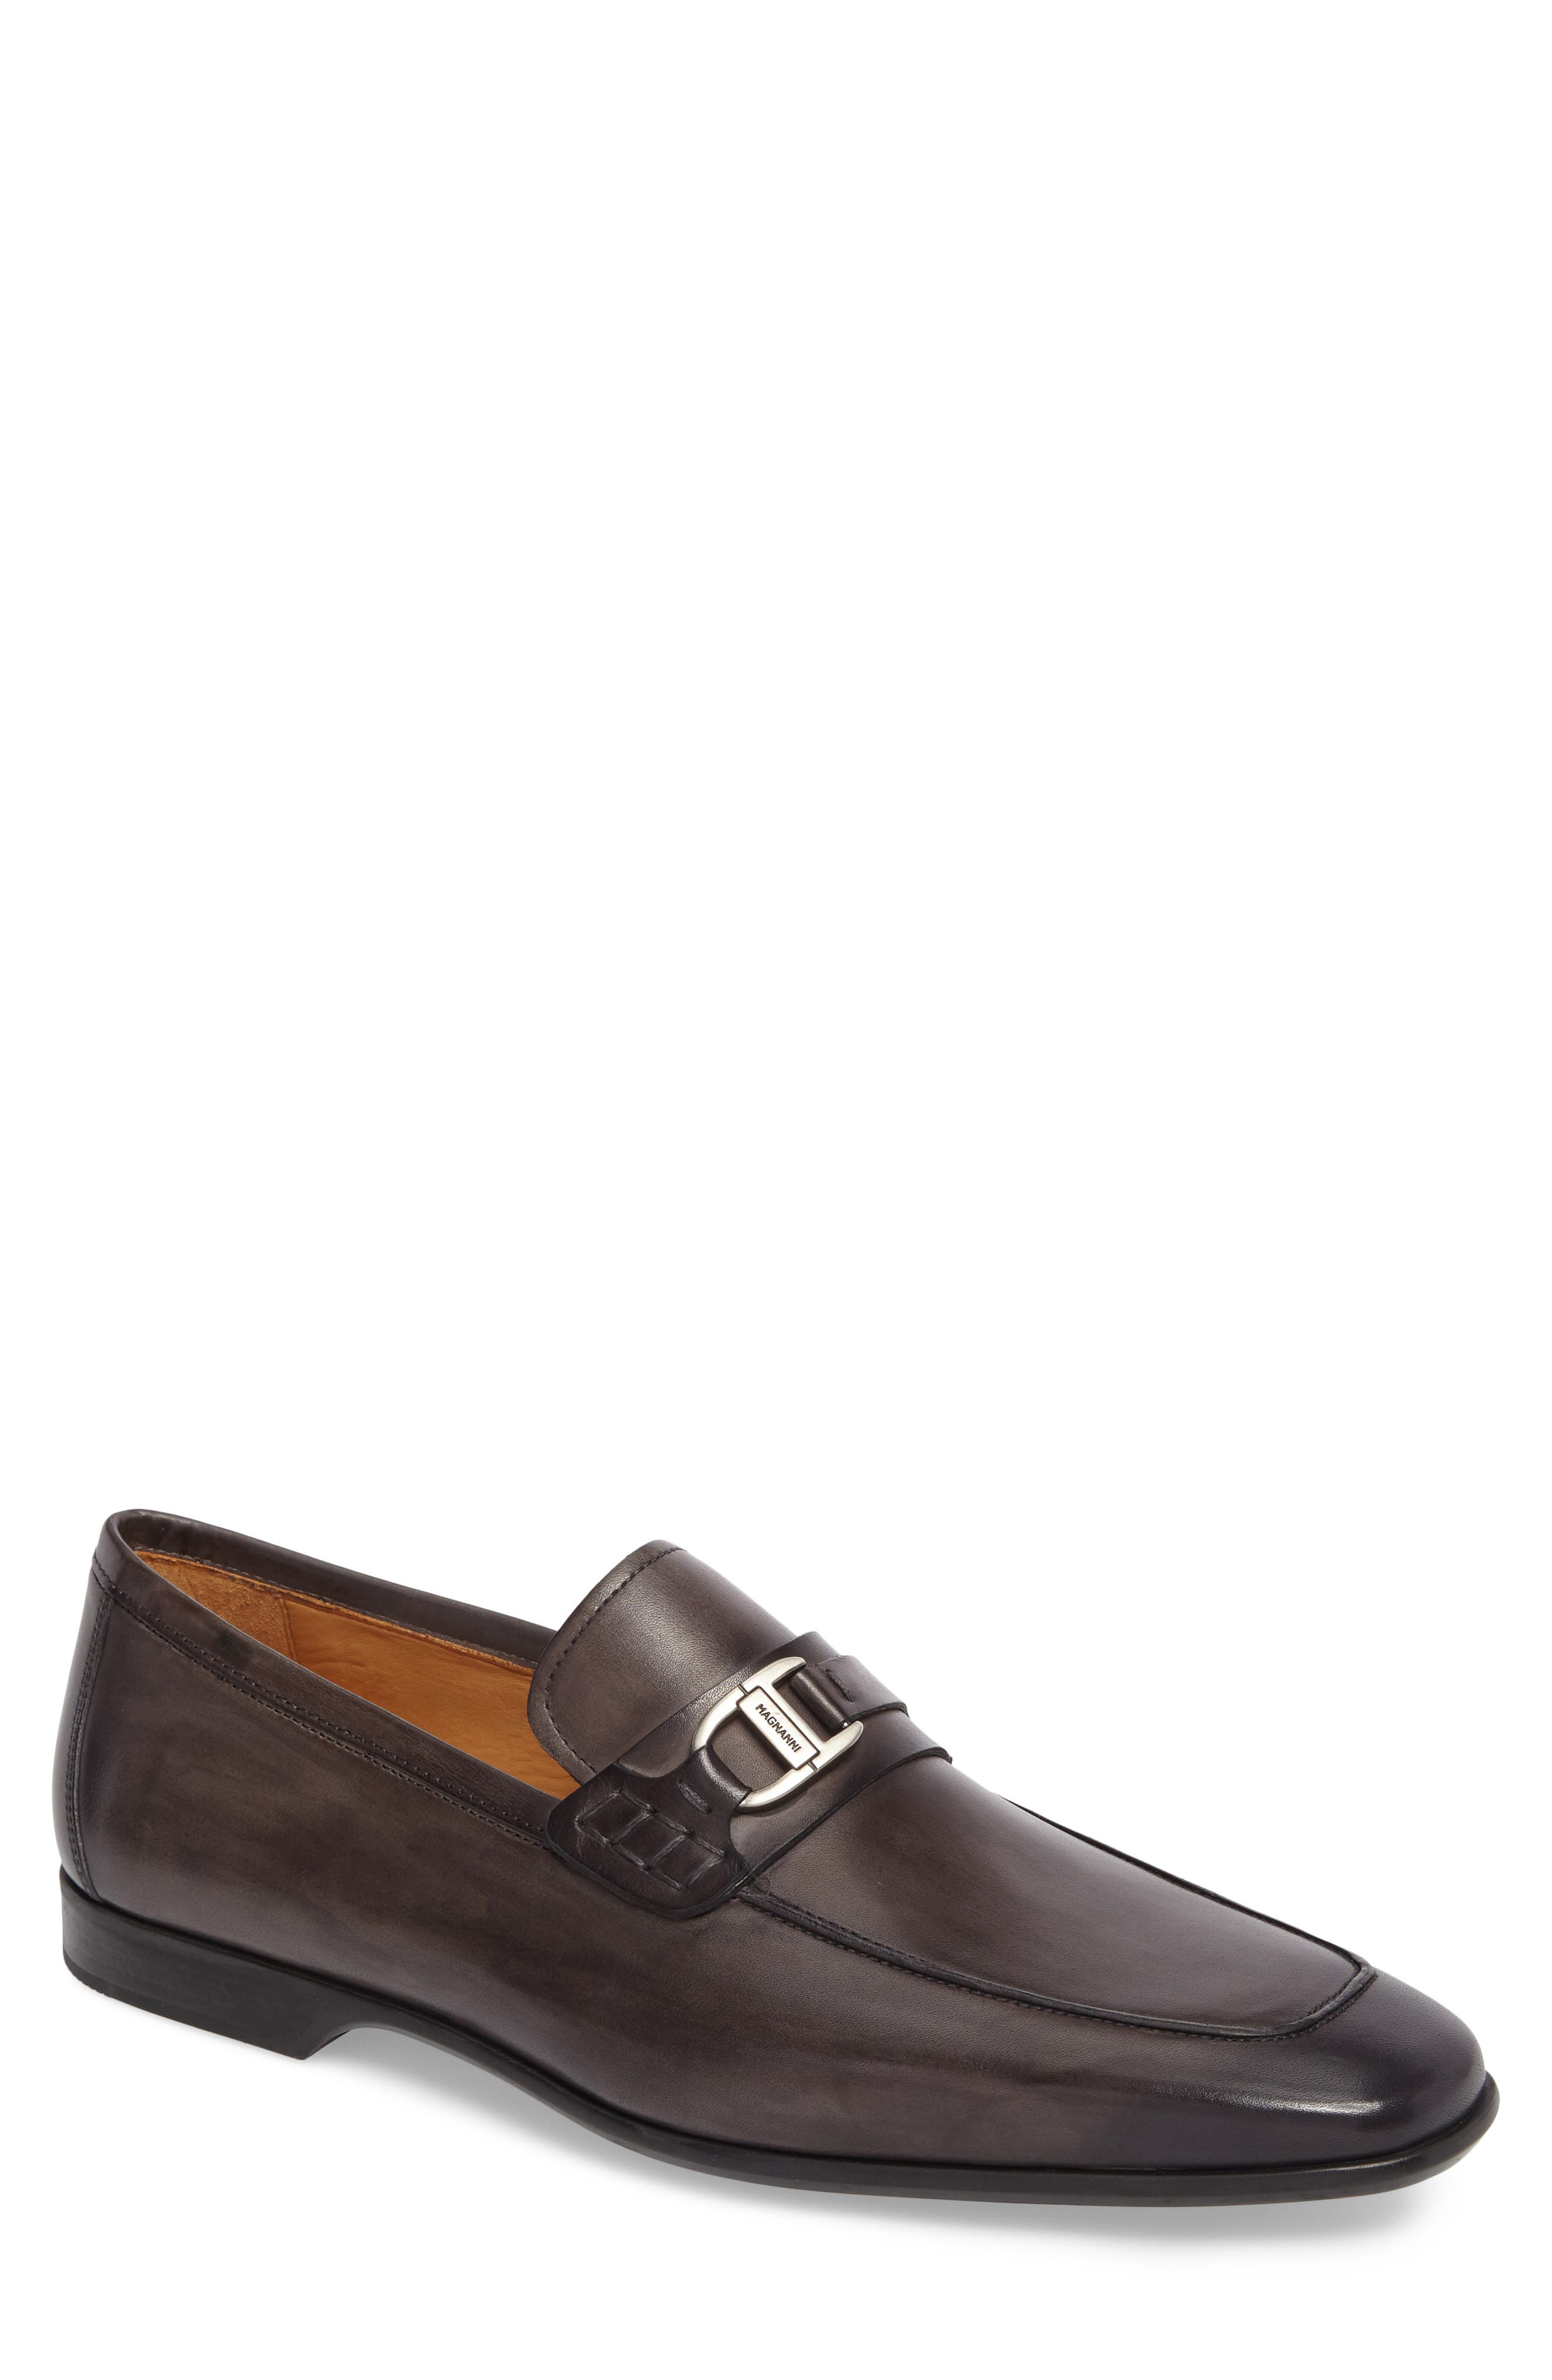 Rufino Bit Loafer,                             Main thumbnail 1, color,                             GREY LEATHER